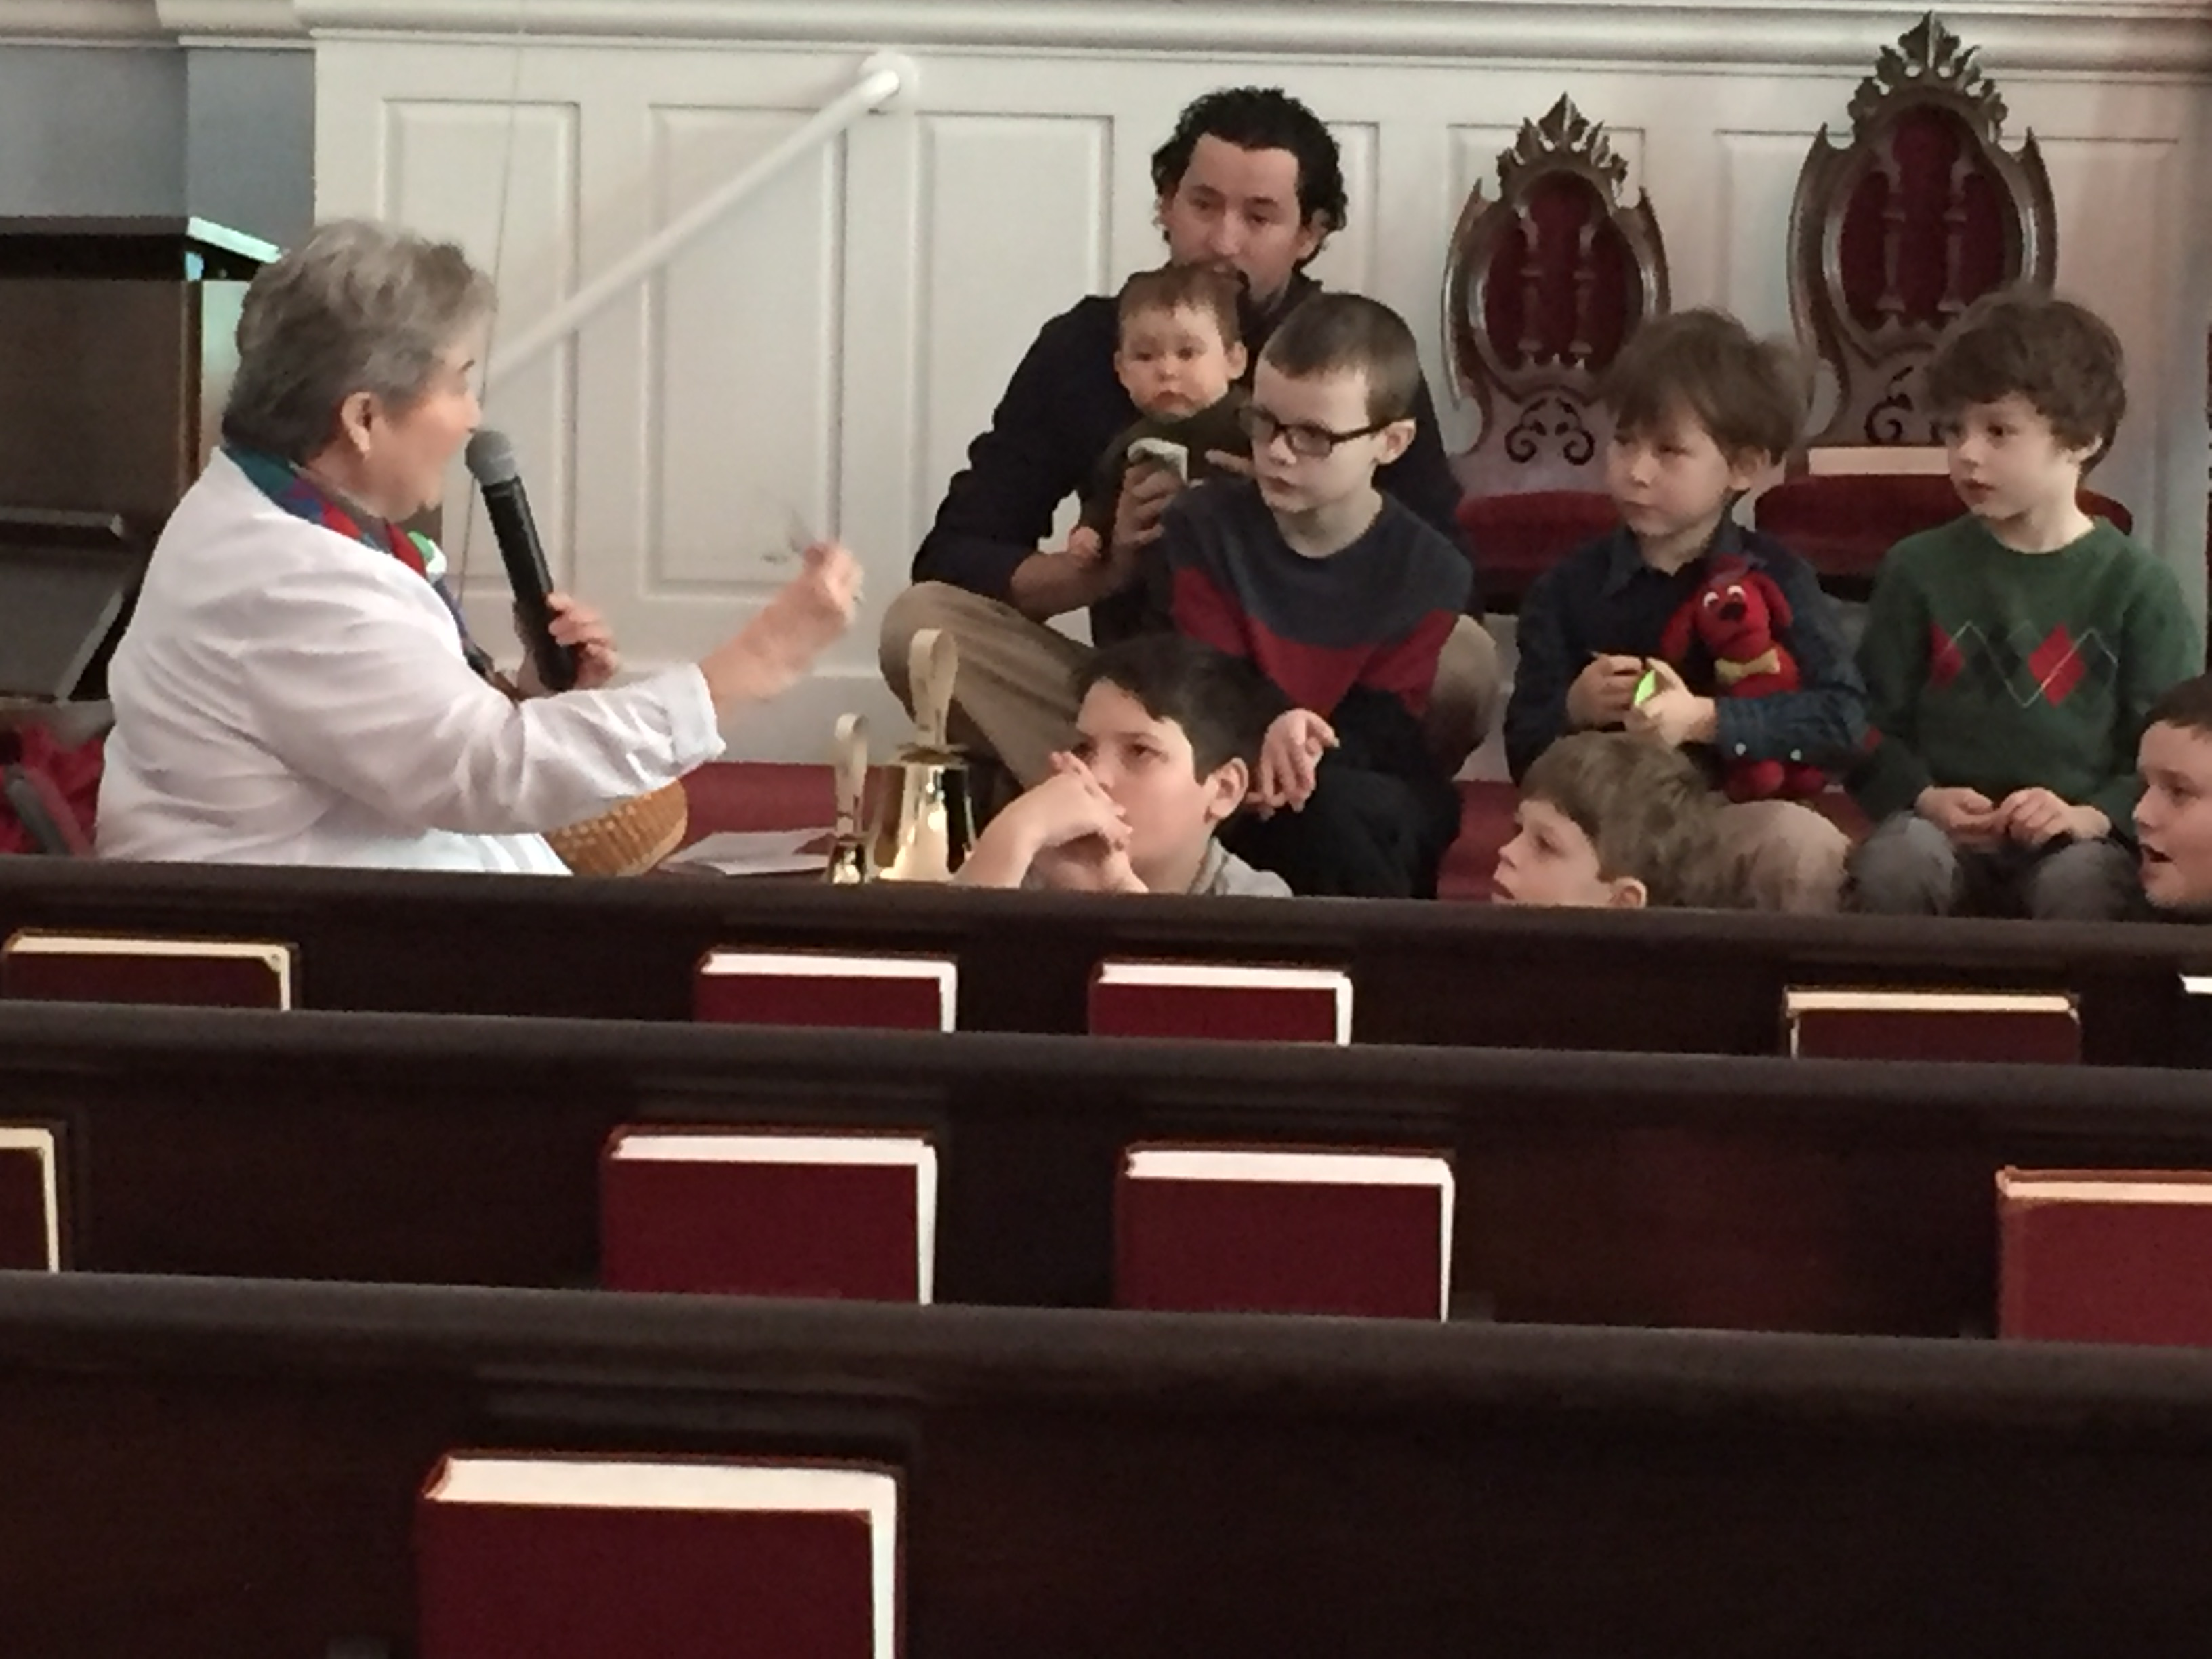 Children's Sermon During A Church Service